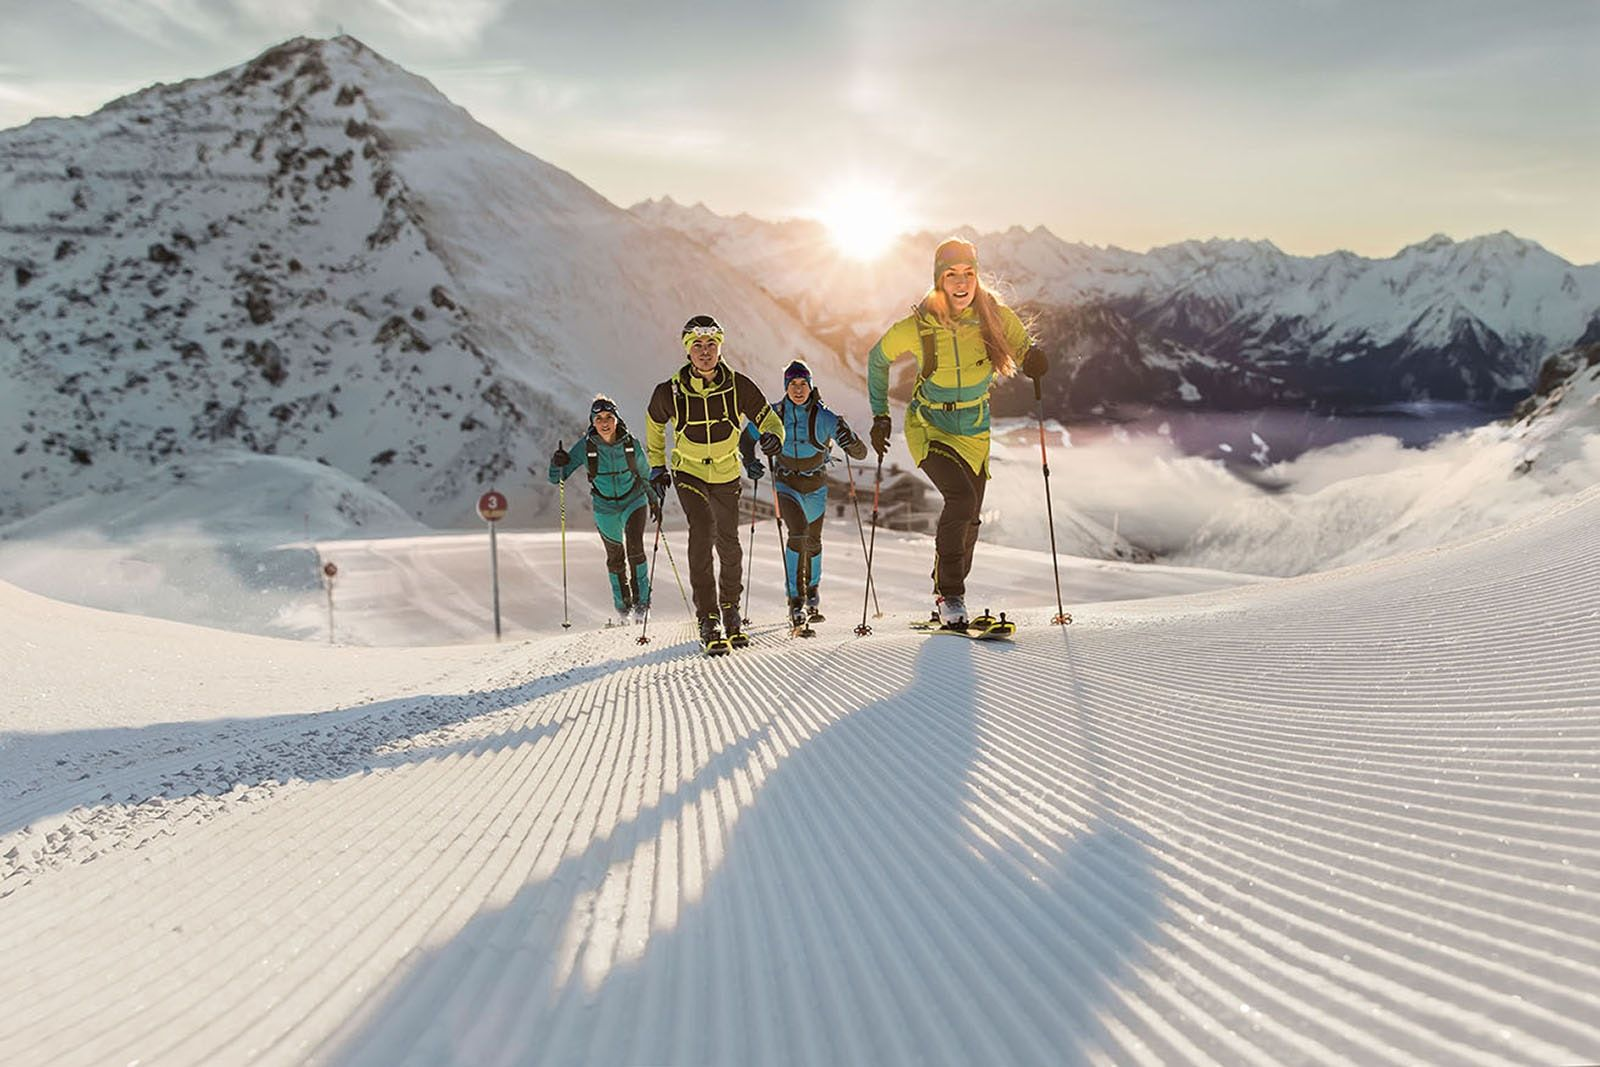 Uphill Skiing Is the Latest Trend in Snow Sports Skiing